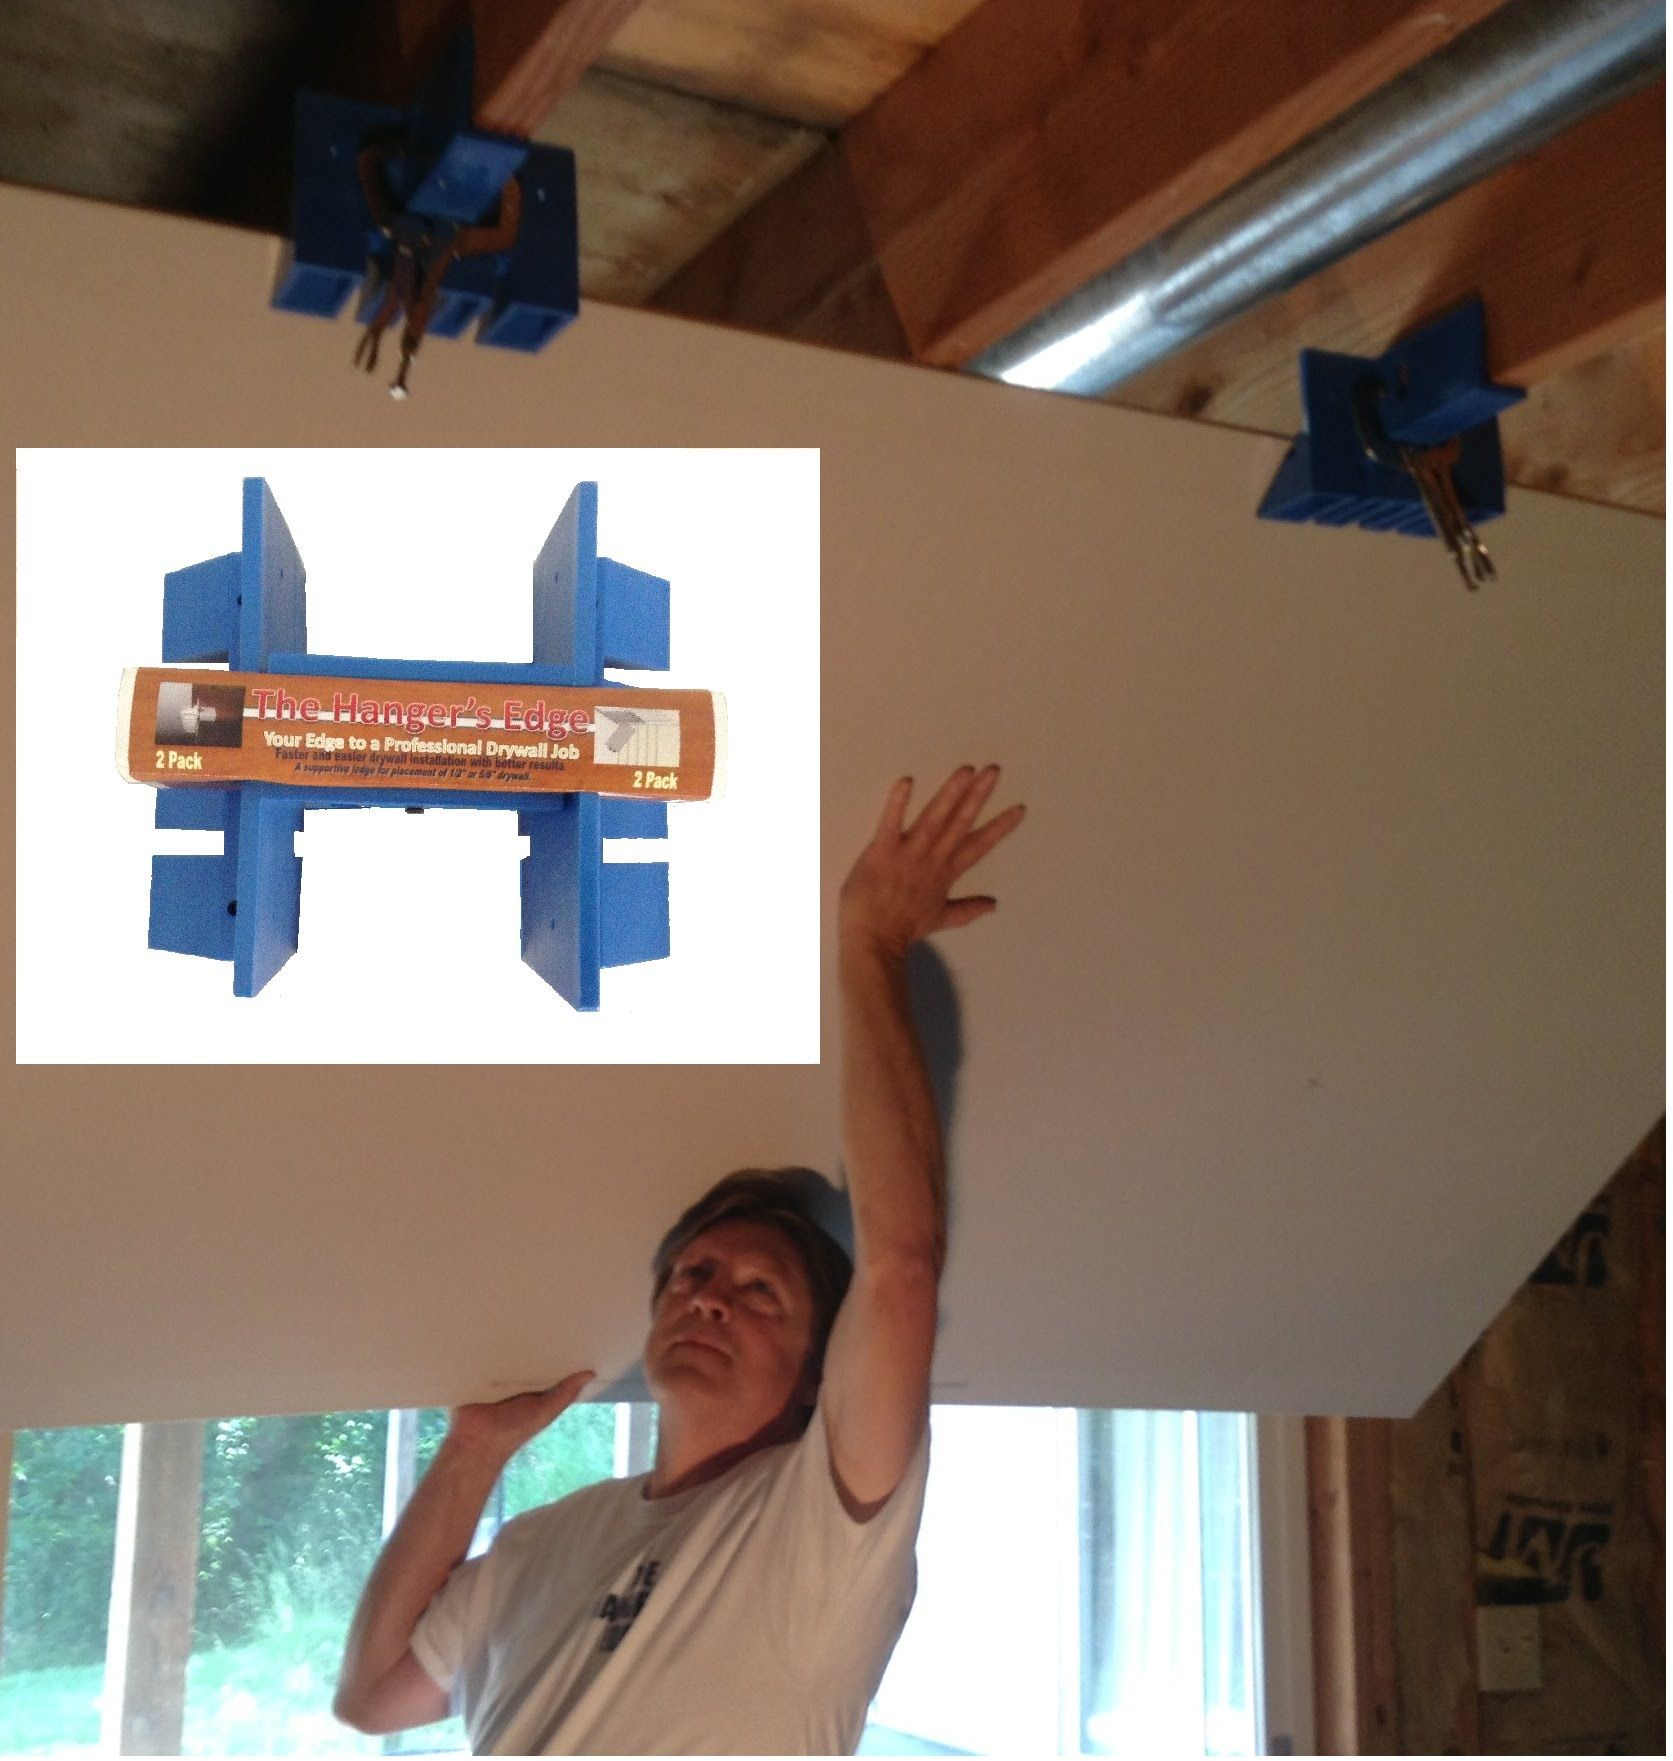 Drywall Installation Tool An Easy Better And Affordable Way To Hang D Drywall Installation Drywall Lift Drywall